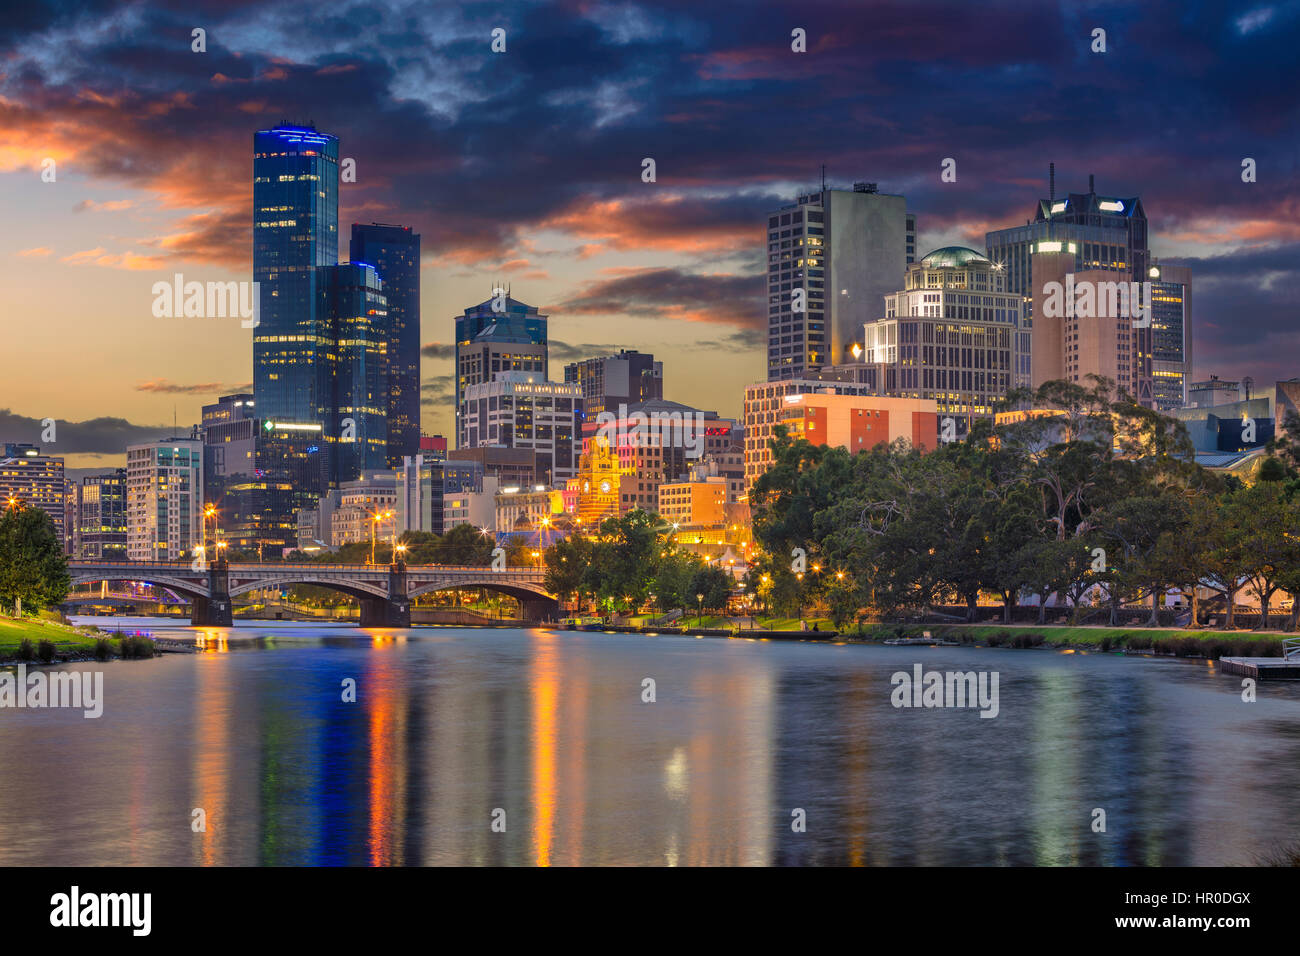 City of Melbourne. Cityscape image of Melbourne, Australia during summer sunset. - Stock Image